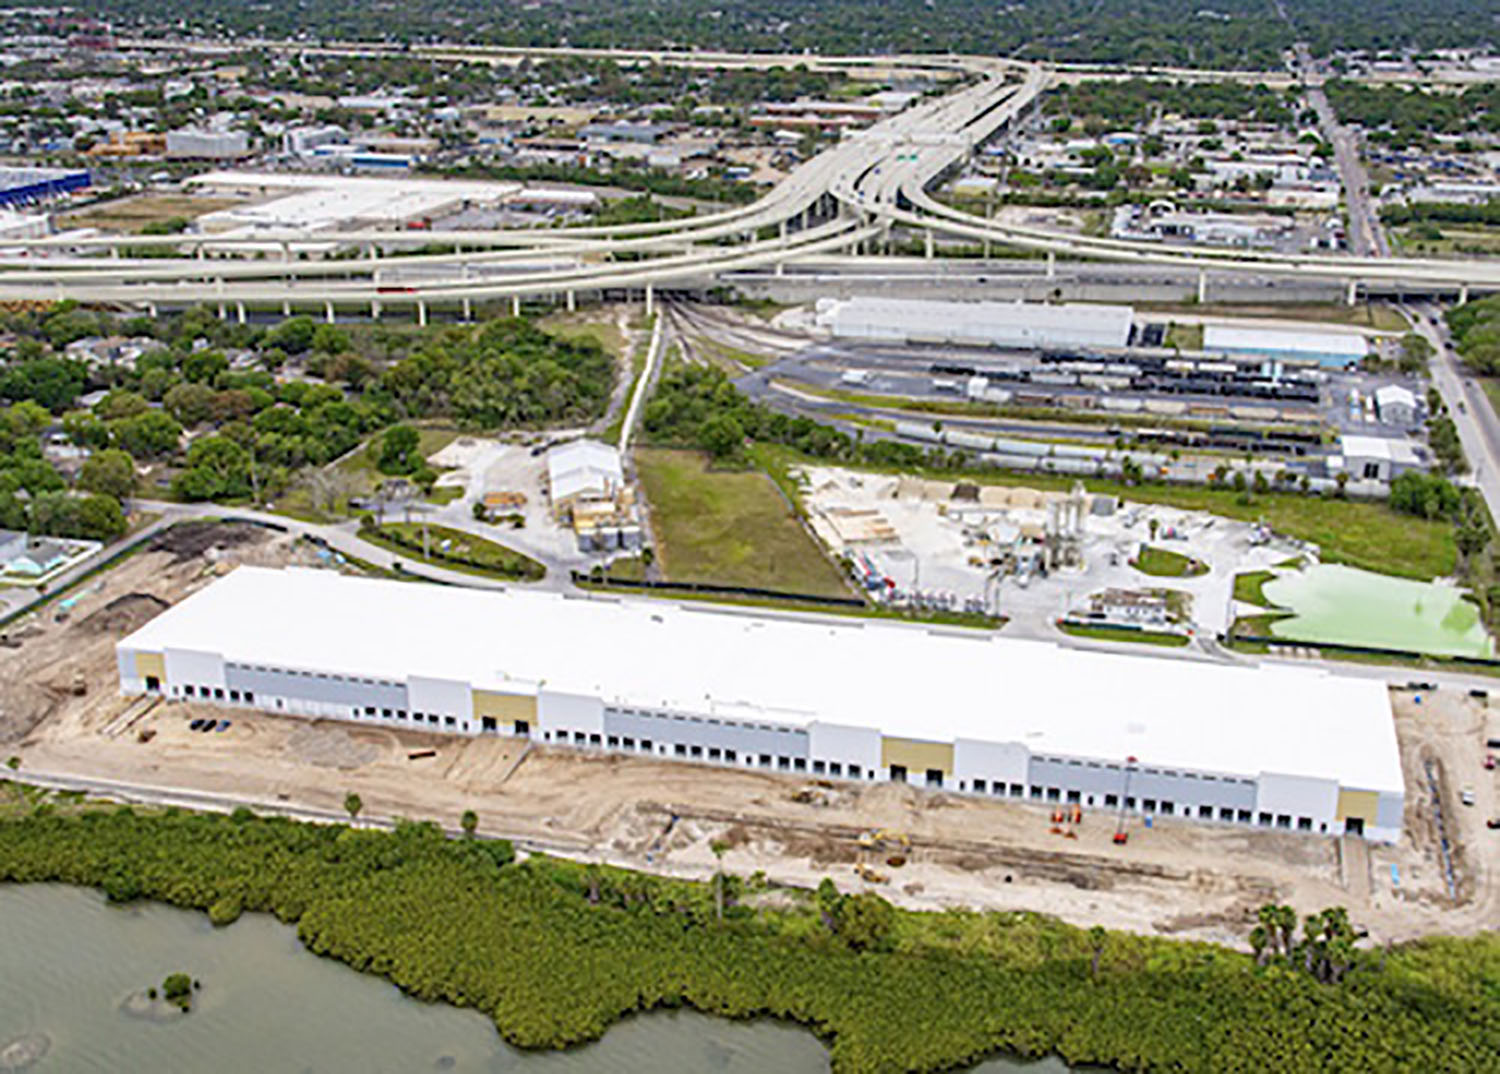 Industrial Real Estate Shifts to Help Response to COVID-19